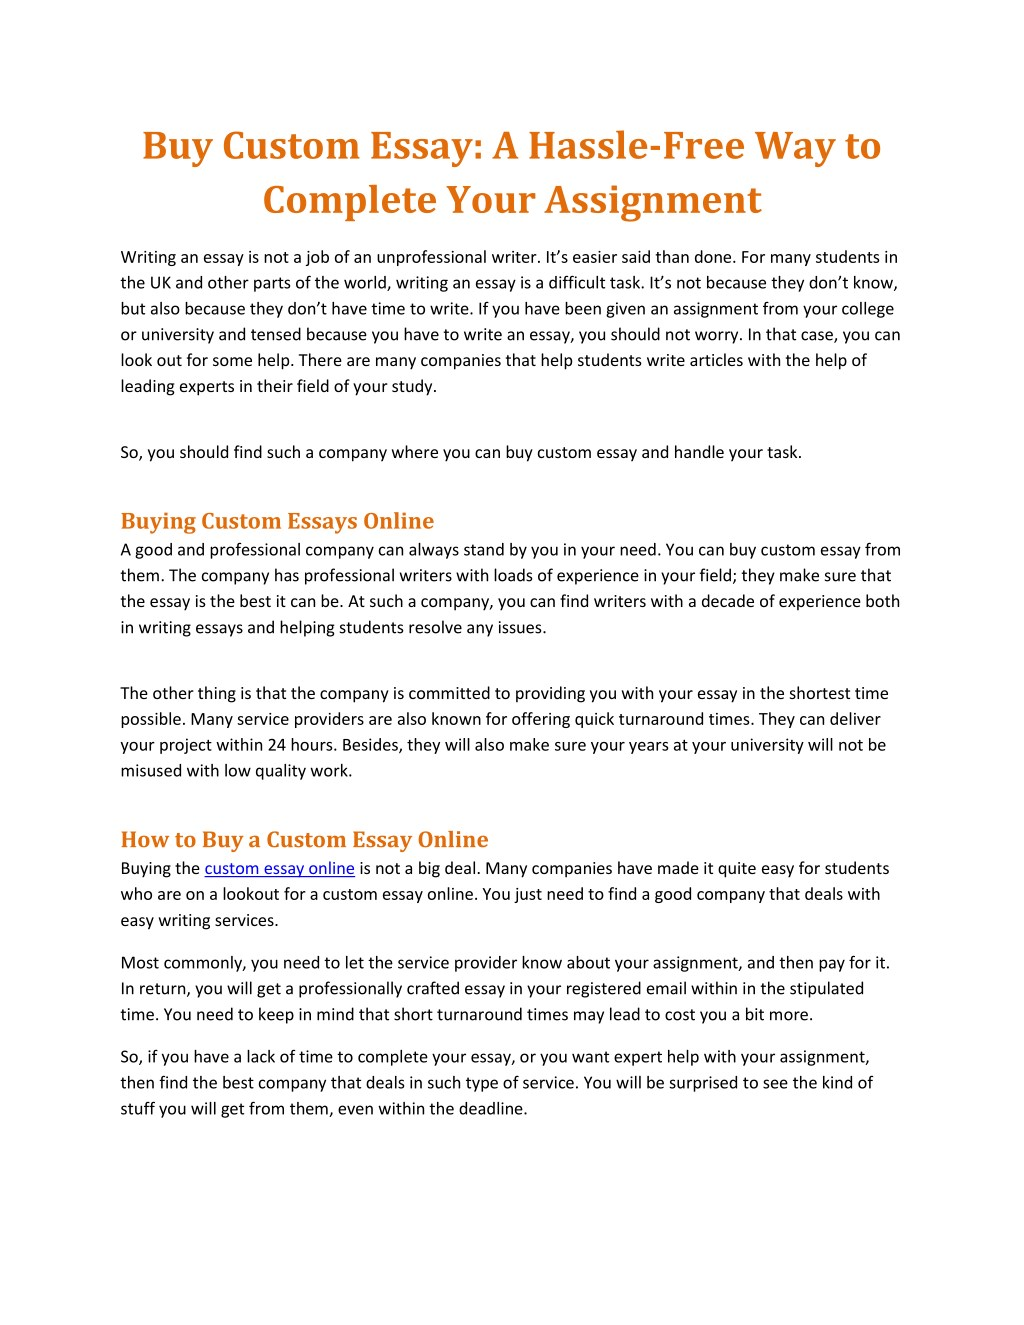 001 Buy Custom Essay Hassle Free Way To Complete L Beautiful Written Cheap Writing Services Full